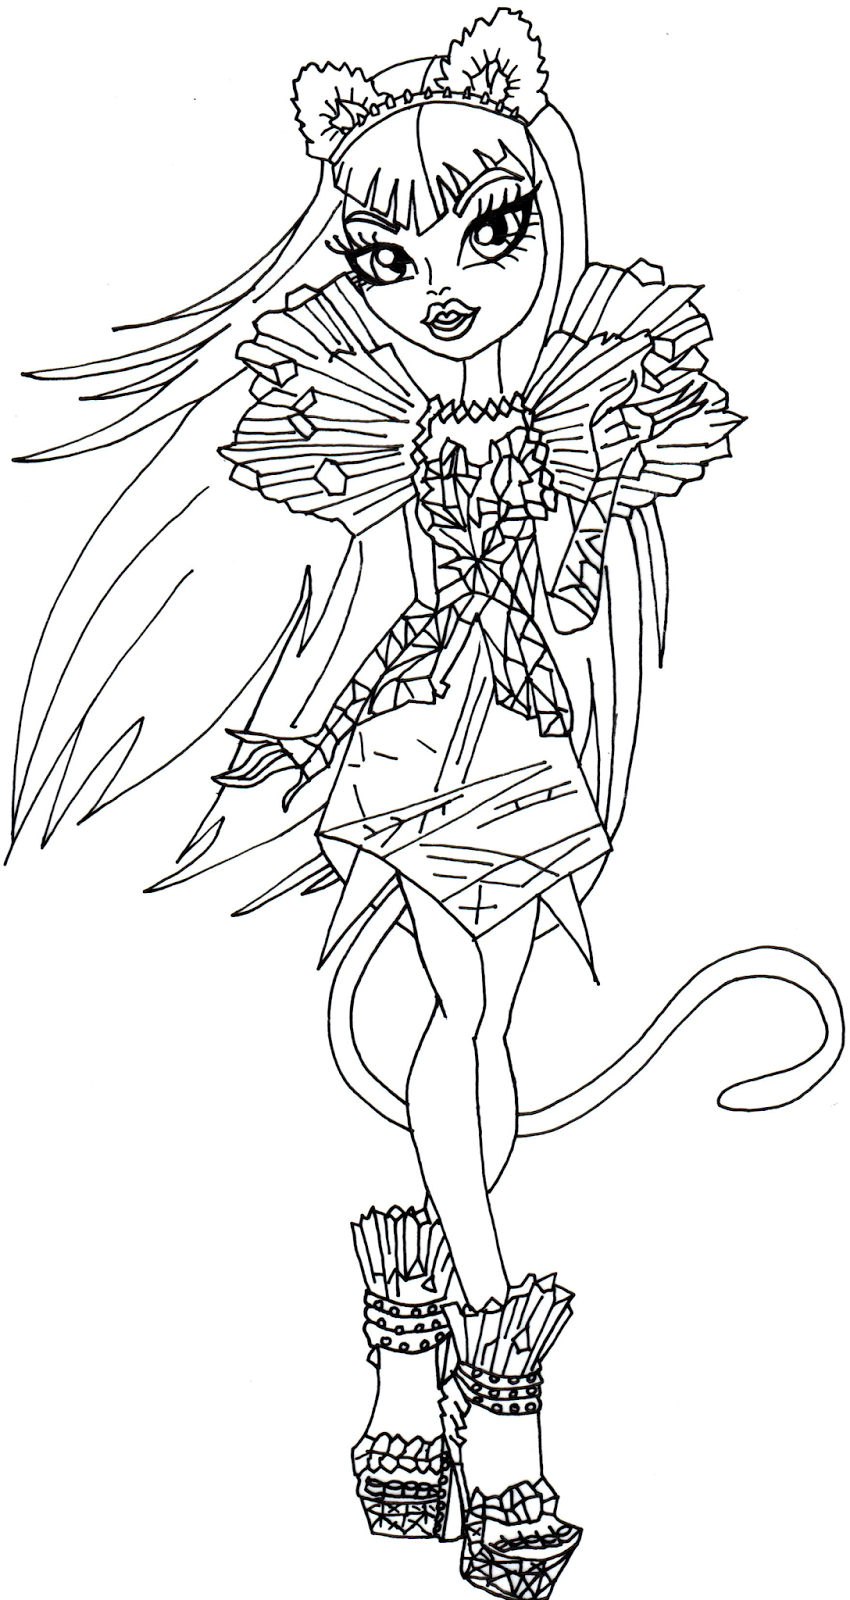 catty noir boo york monster high coloring page - Monster High Coloring Pages